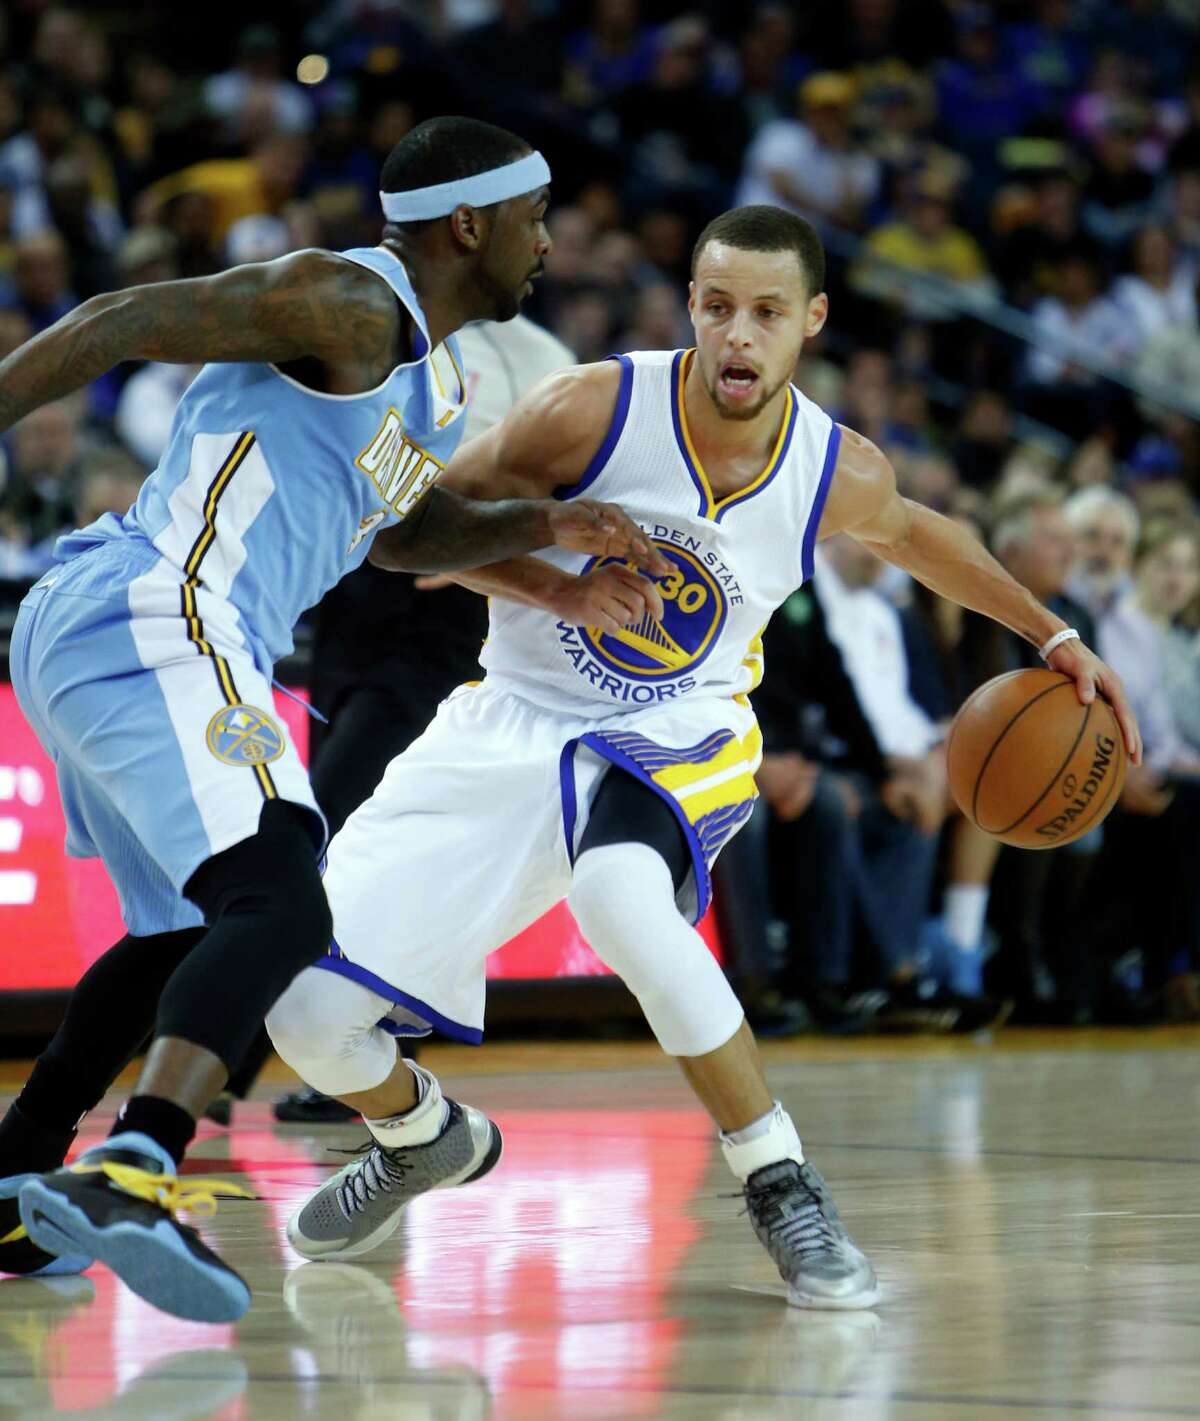 Stephen Curry had more blocks (two) than turnovers (one) against Denver.